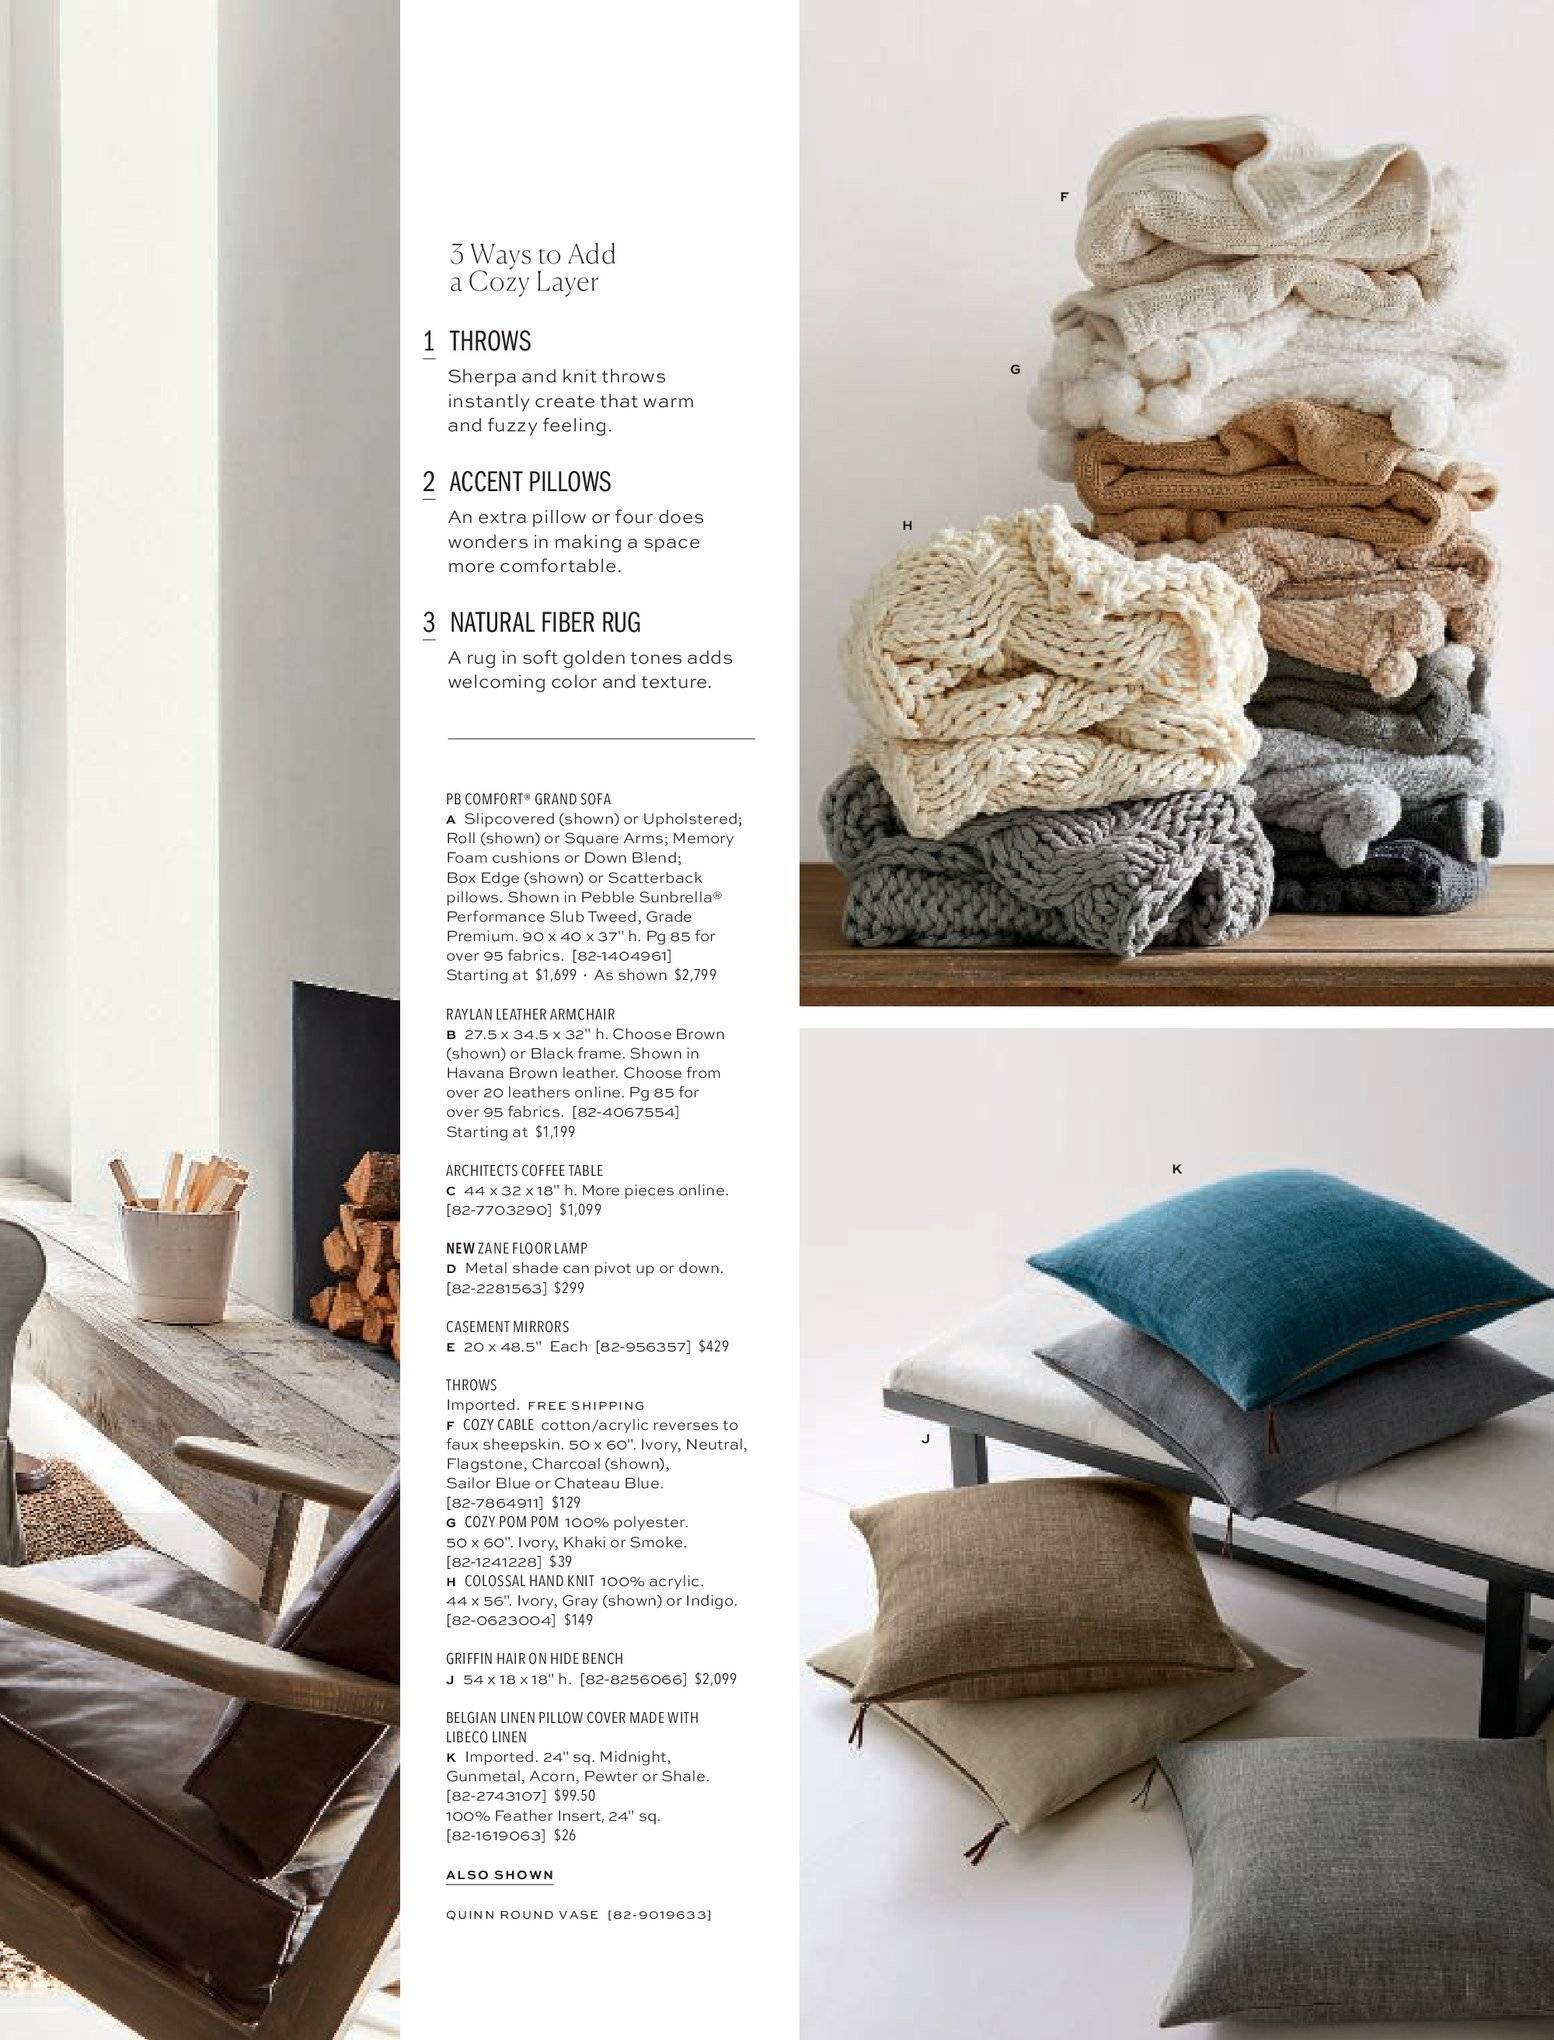 Pottery Barn Catalogue - 1.2.2019 - 28.2.2019 - Sales products - arm chair, bench, box, coffee, coffee table, cover, foam, frame, grand, rug, sherpa, sofa, table, throw, pillow, pillow cover. Page 11.